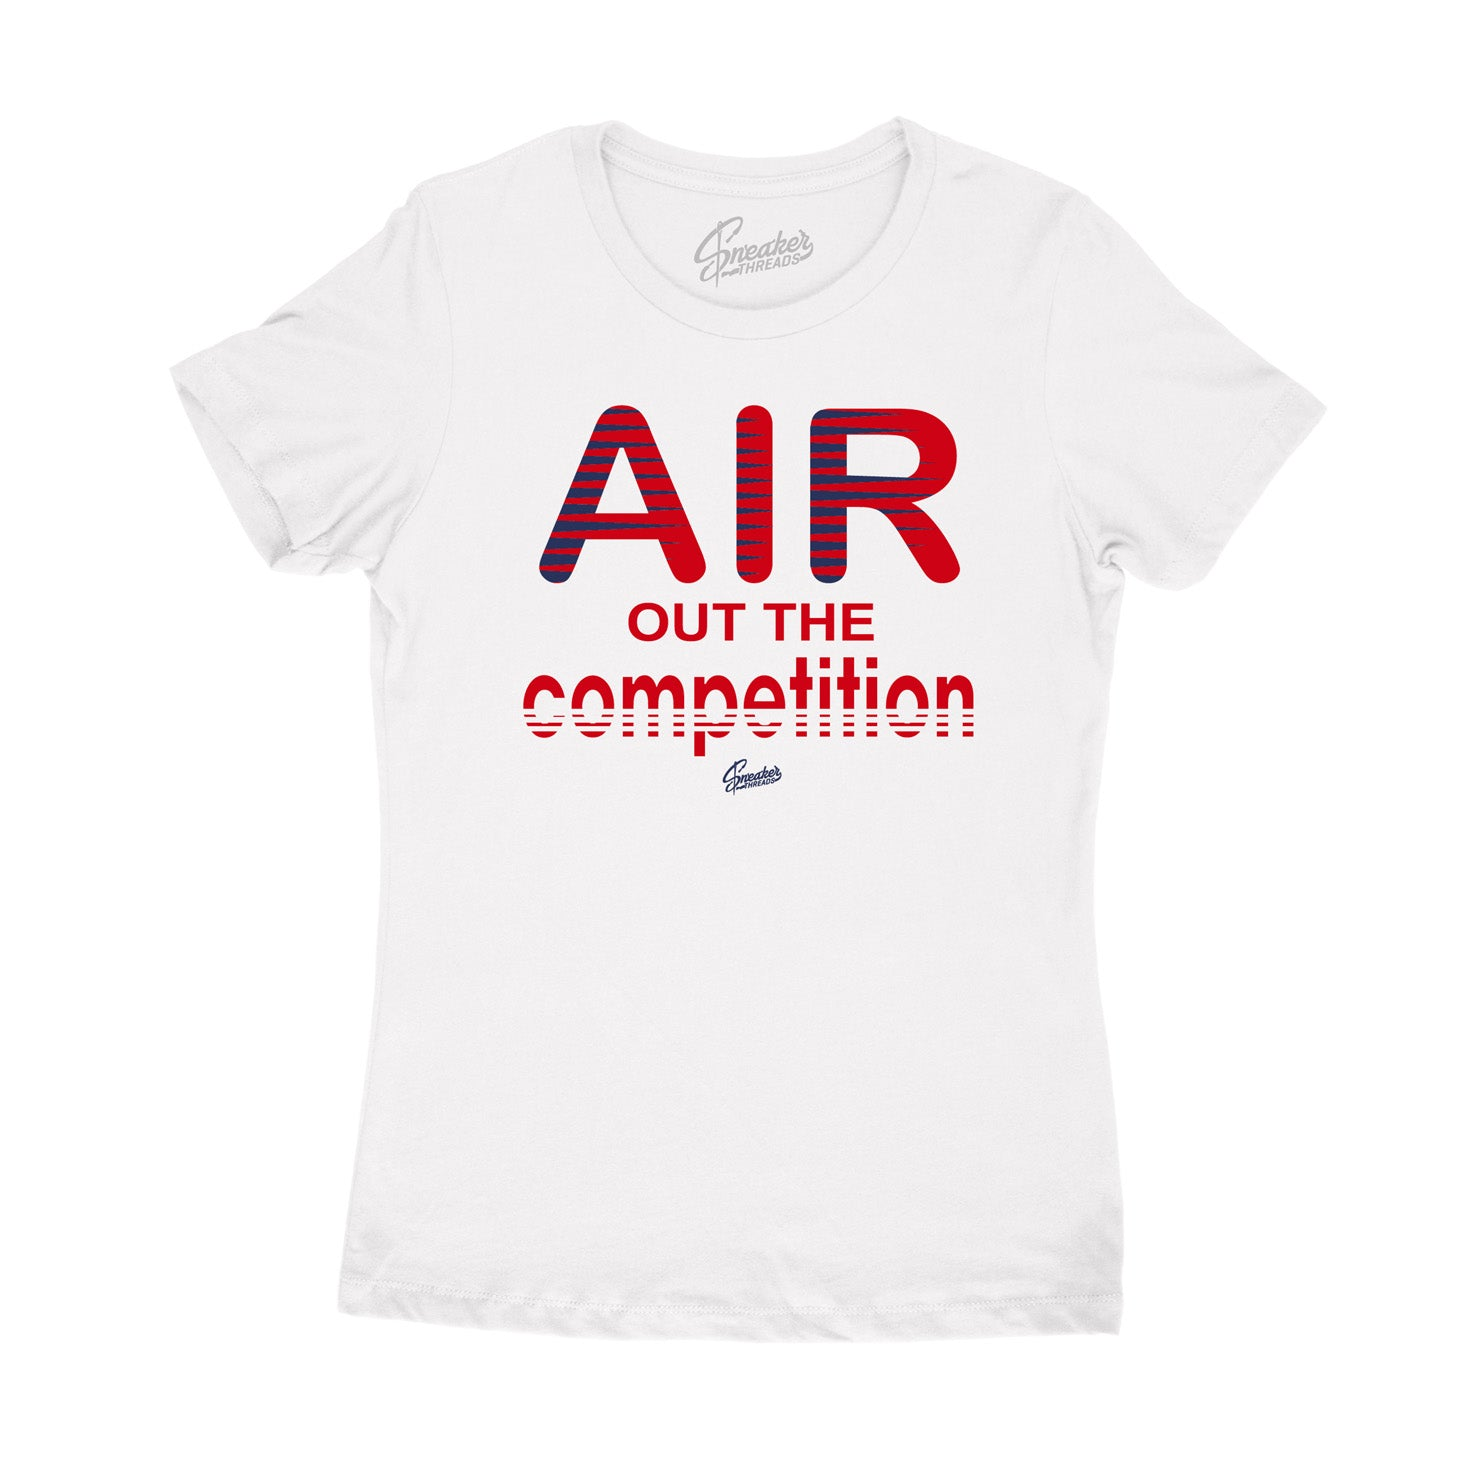 Womens tees made to match perfectly with womens Jordan 4 fiba sneaker collection